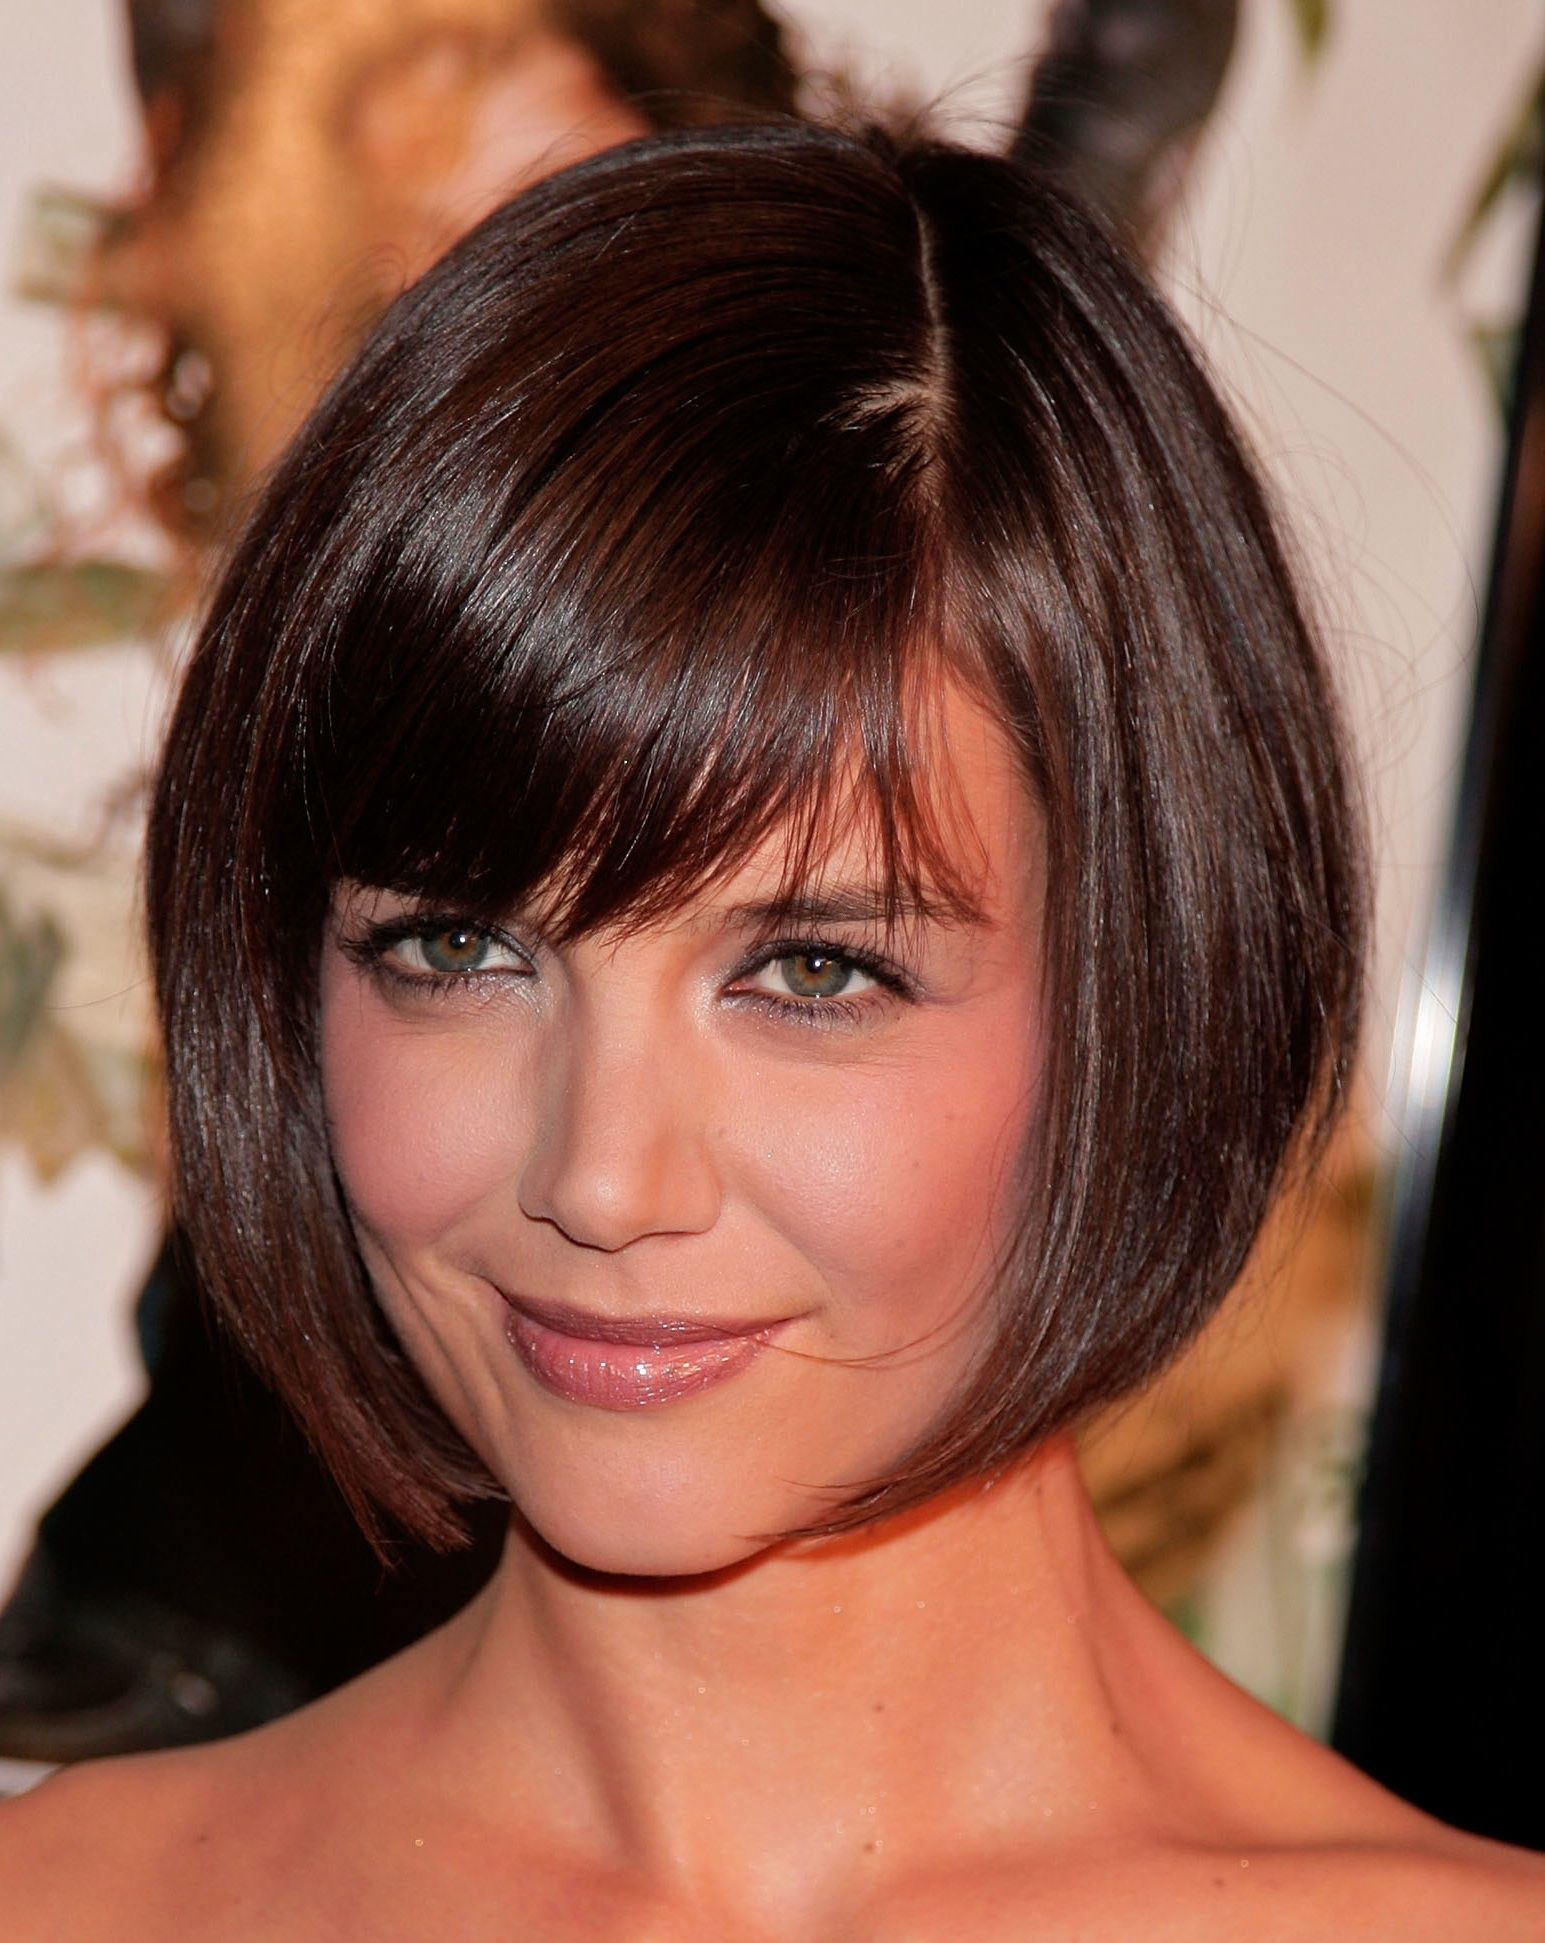 Katie Holmes Hairstyles Delectable Katie Holmes Photo Galleries Of Her Hair Over The Years  Side